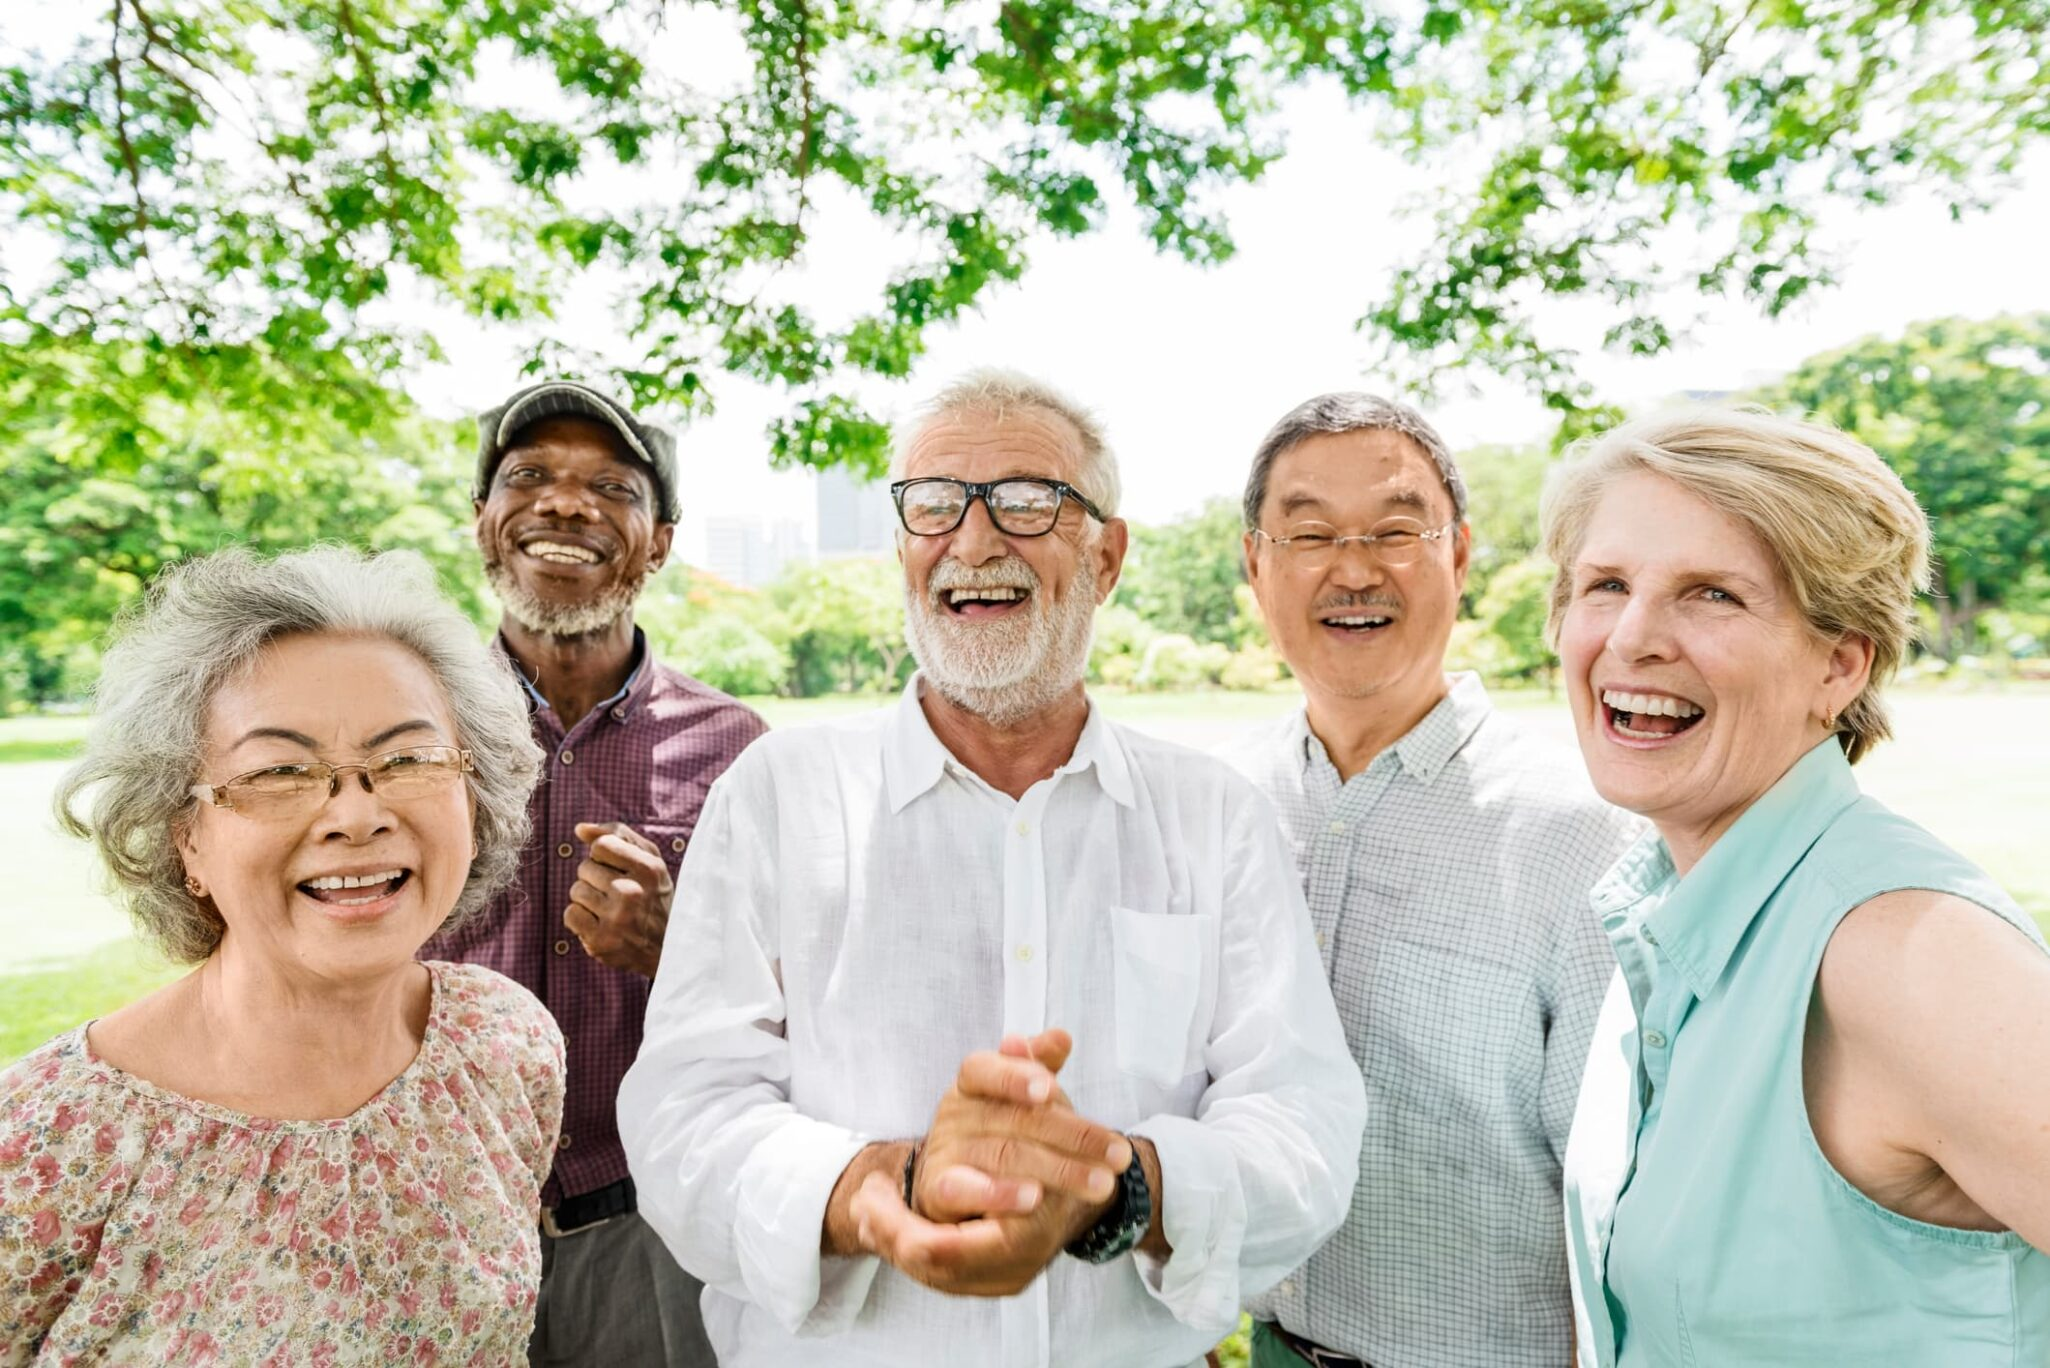 A group of friendly retirees having fun outside.